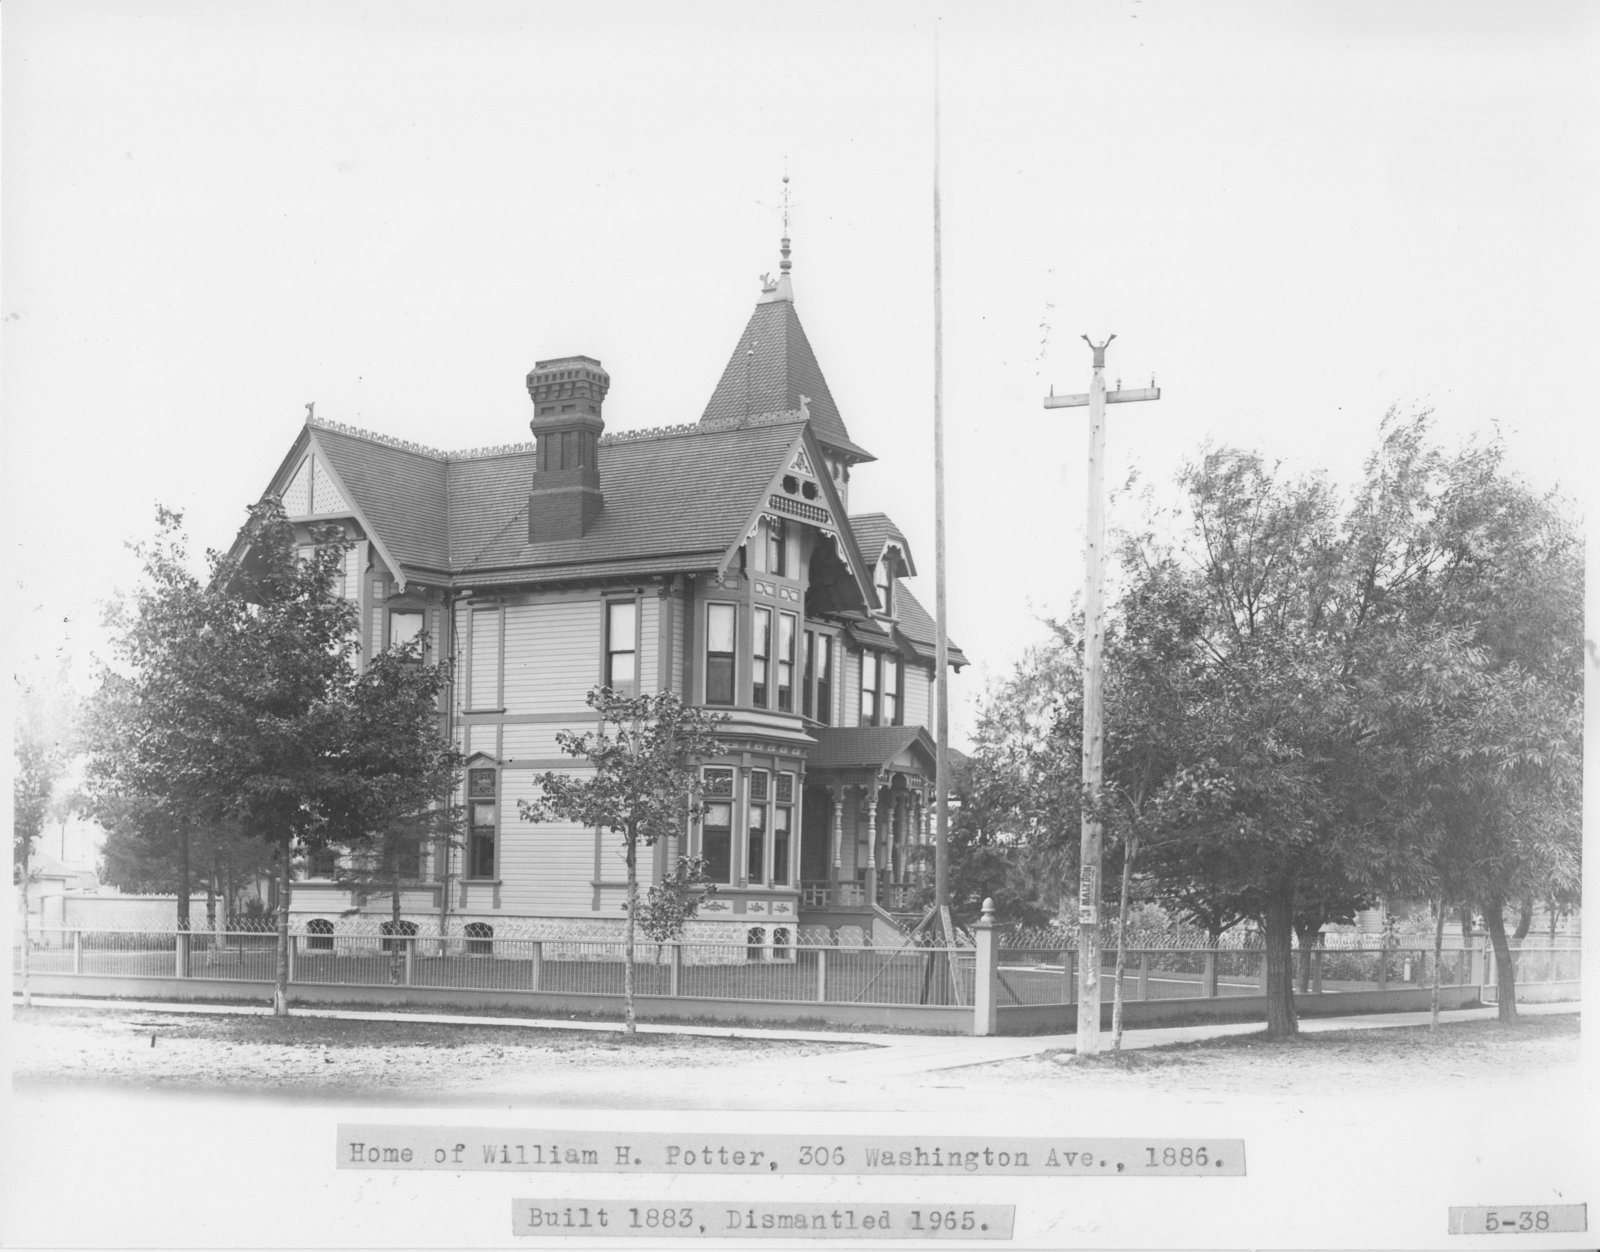 Potter Home on Washington Avenue, Alpena, Michigan